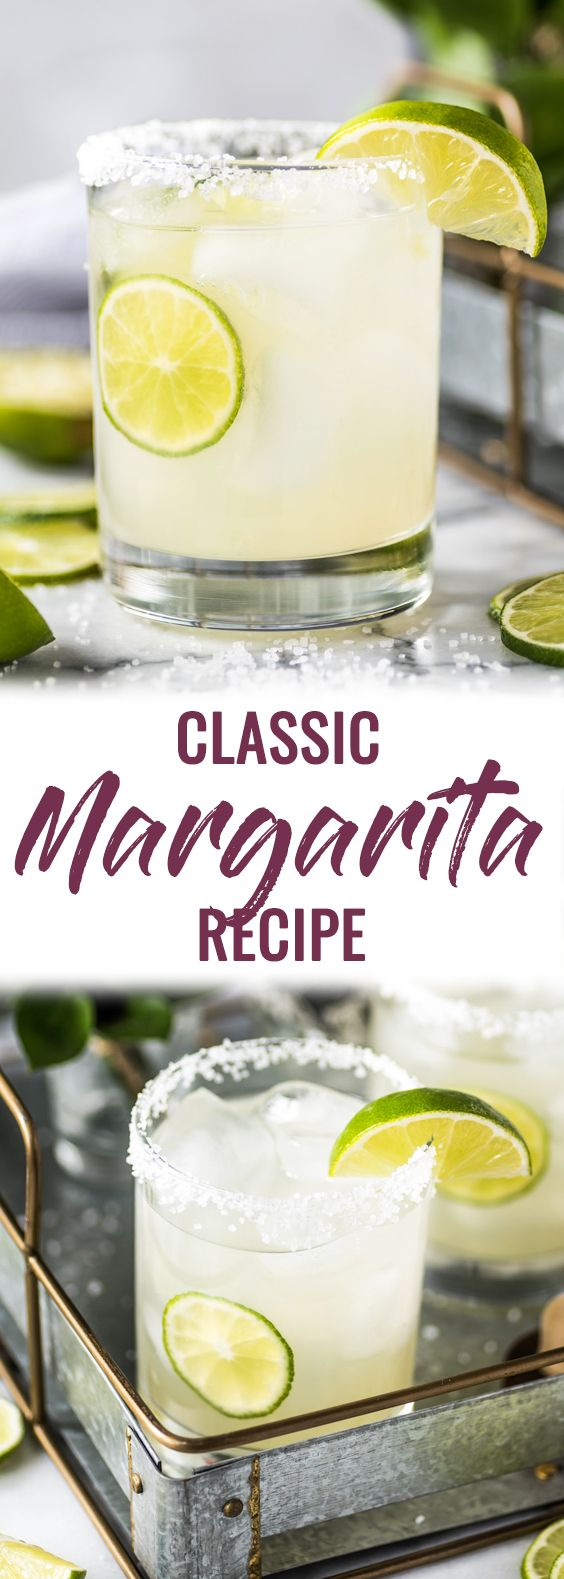 This Classic Margarita Recipe is perfectly balanced with tequila, triple sec and lime juice for a crisp and refreshing cocktail. No margarita mix required! #margarita #cocktail #tequila #mexican | gluten free cocktail | paleo cocktail | on the rocks | skinny margarita | top shelf